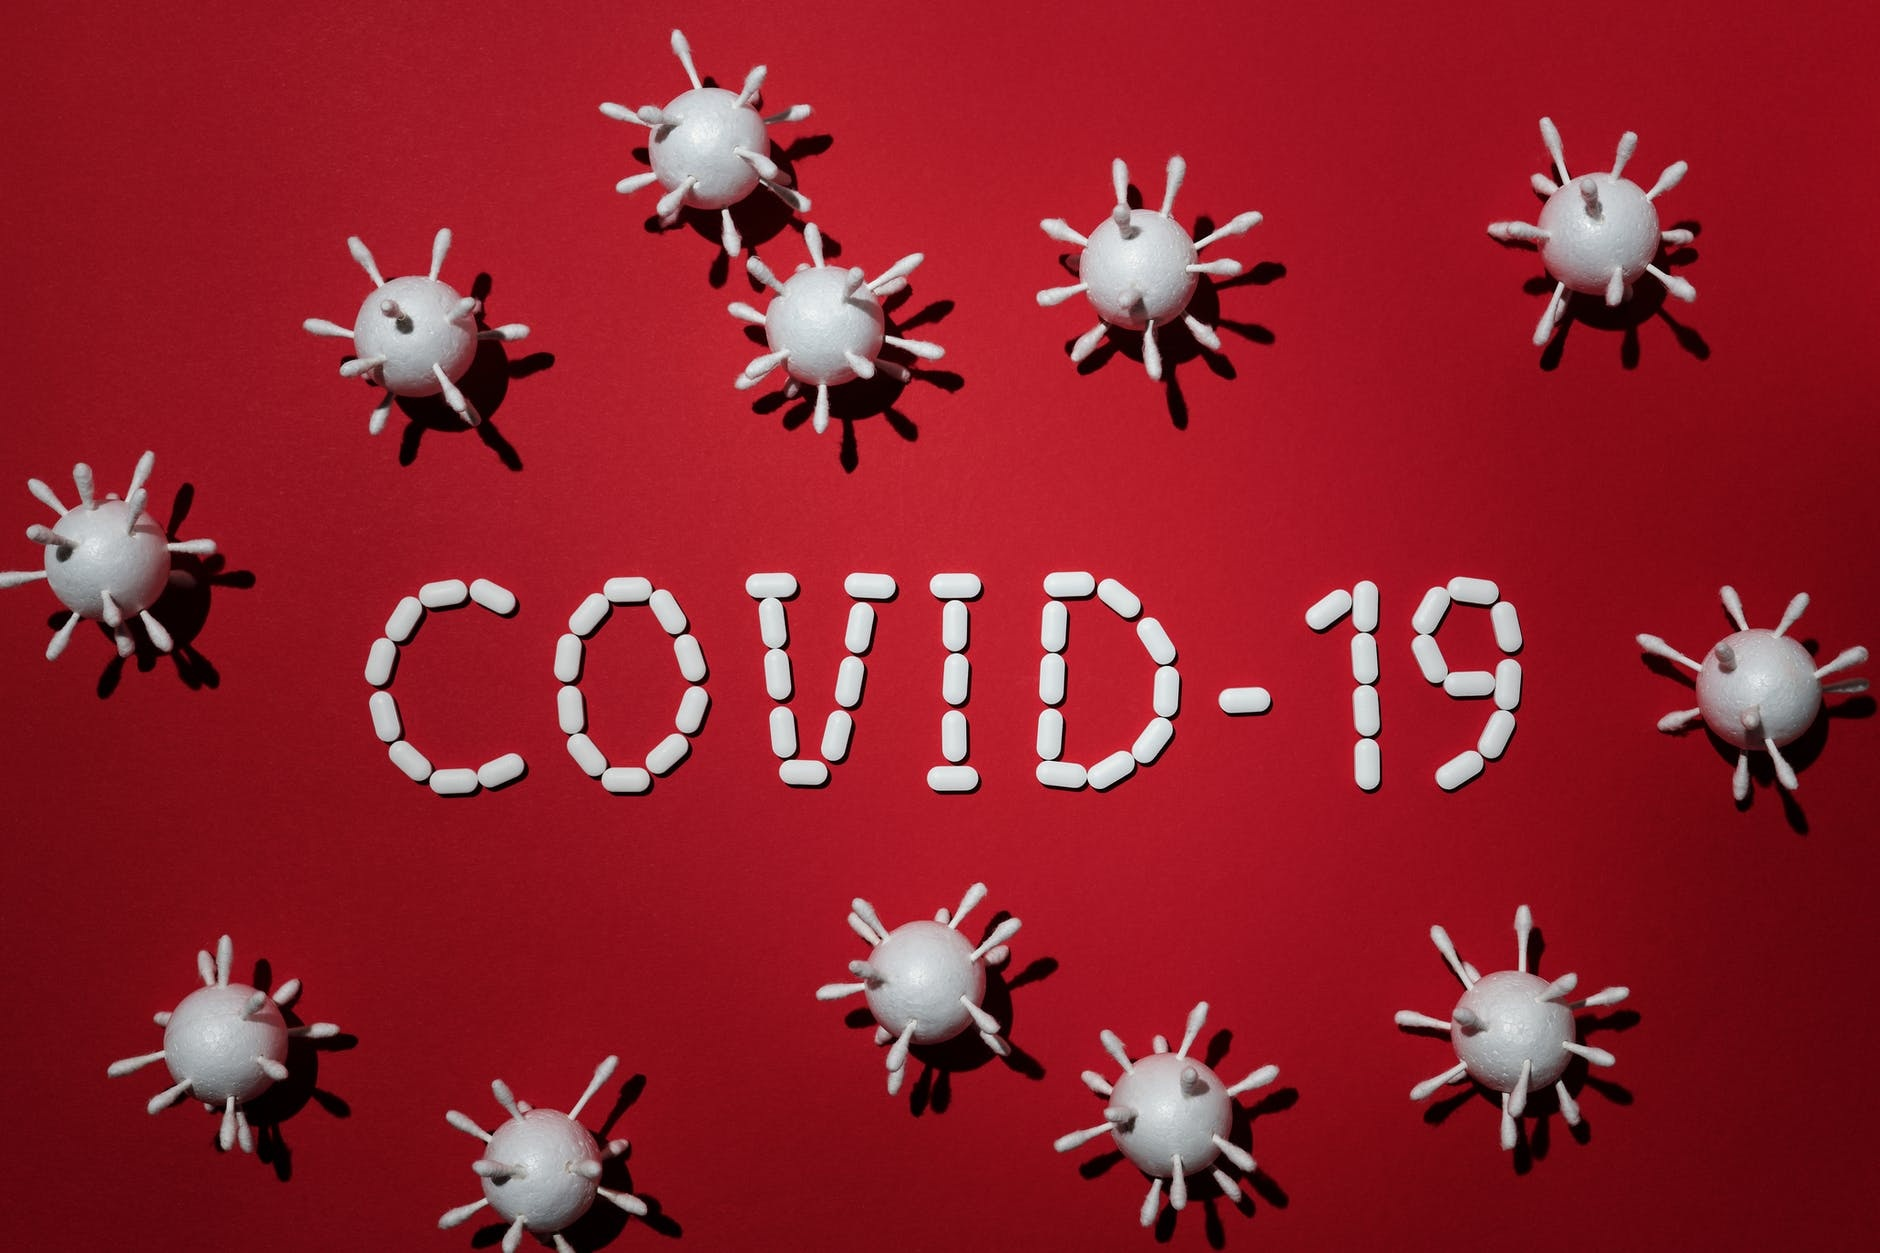 Survey Sees Coronavirus Leading to Lasting Changes